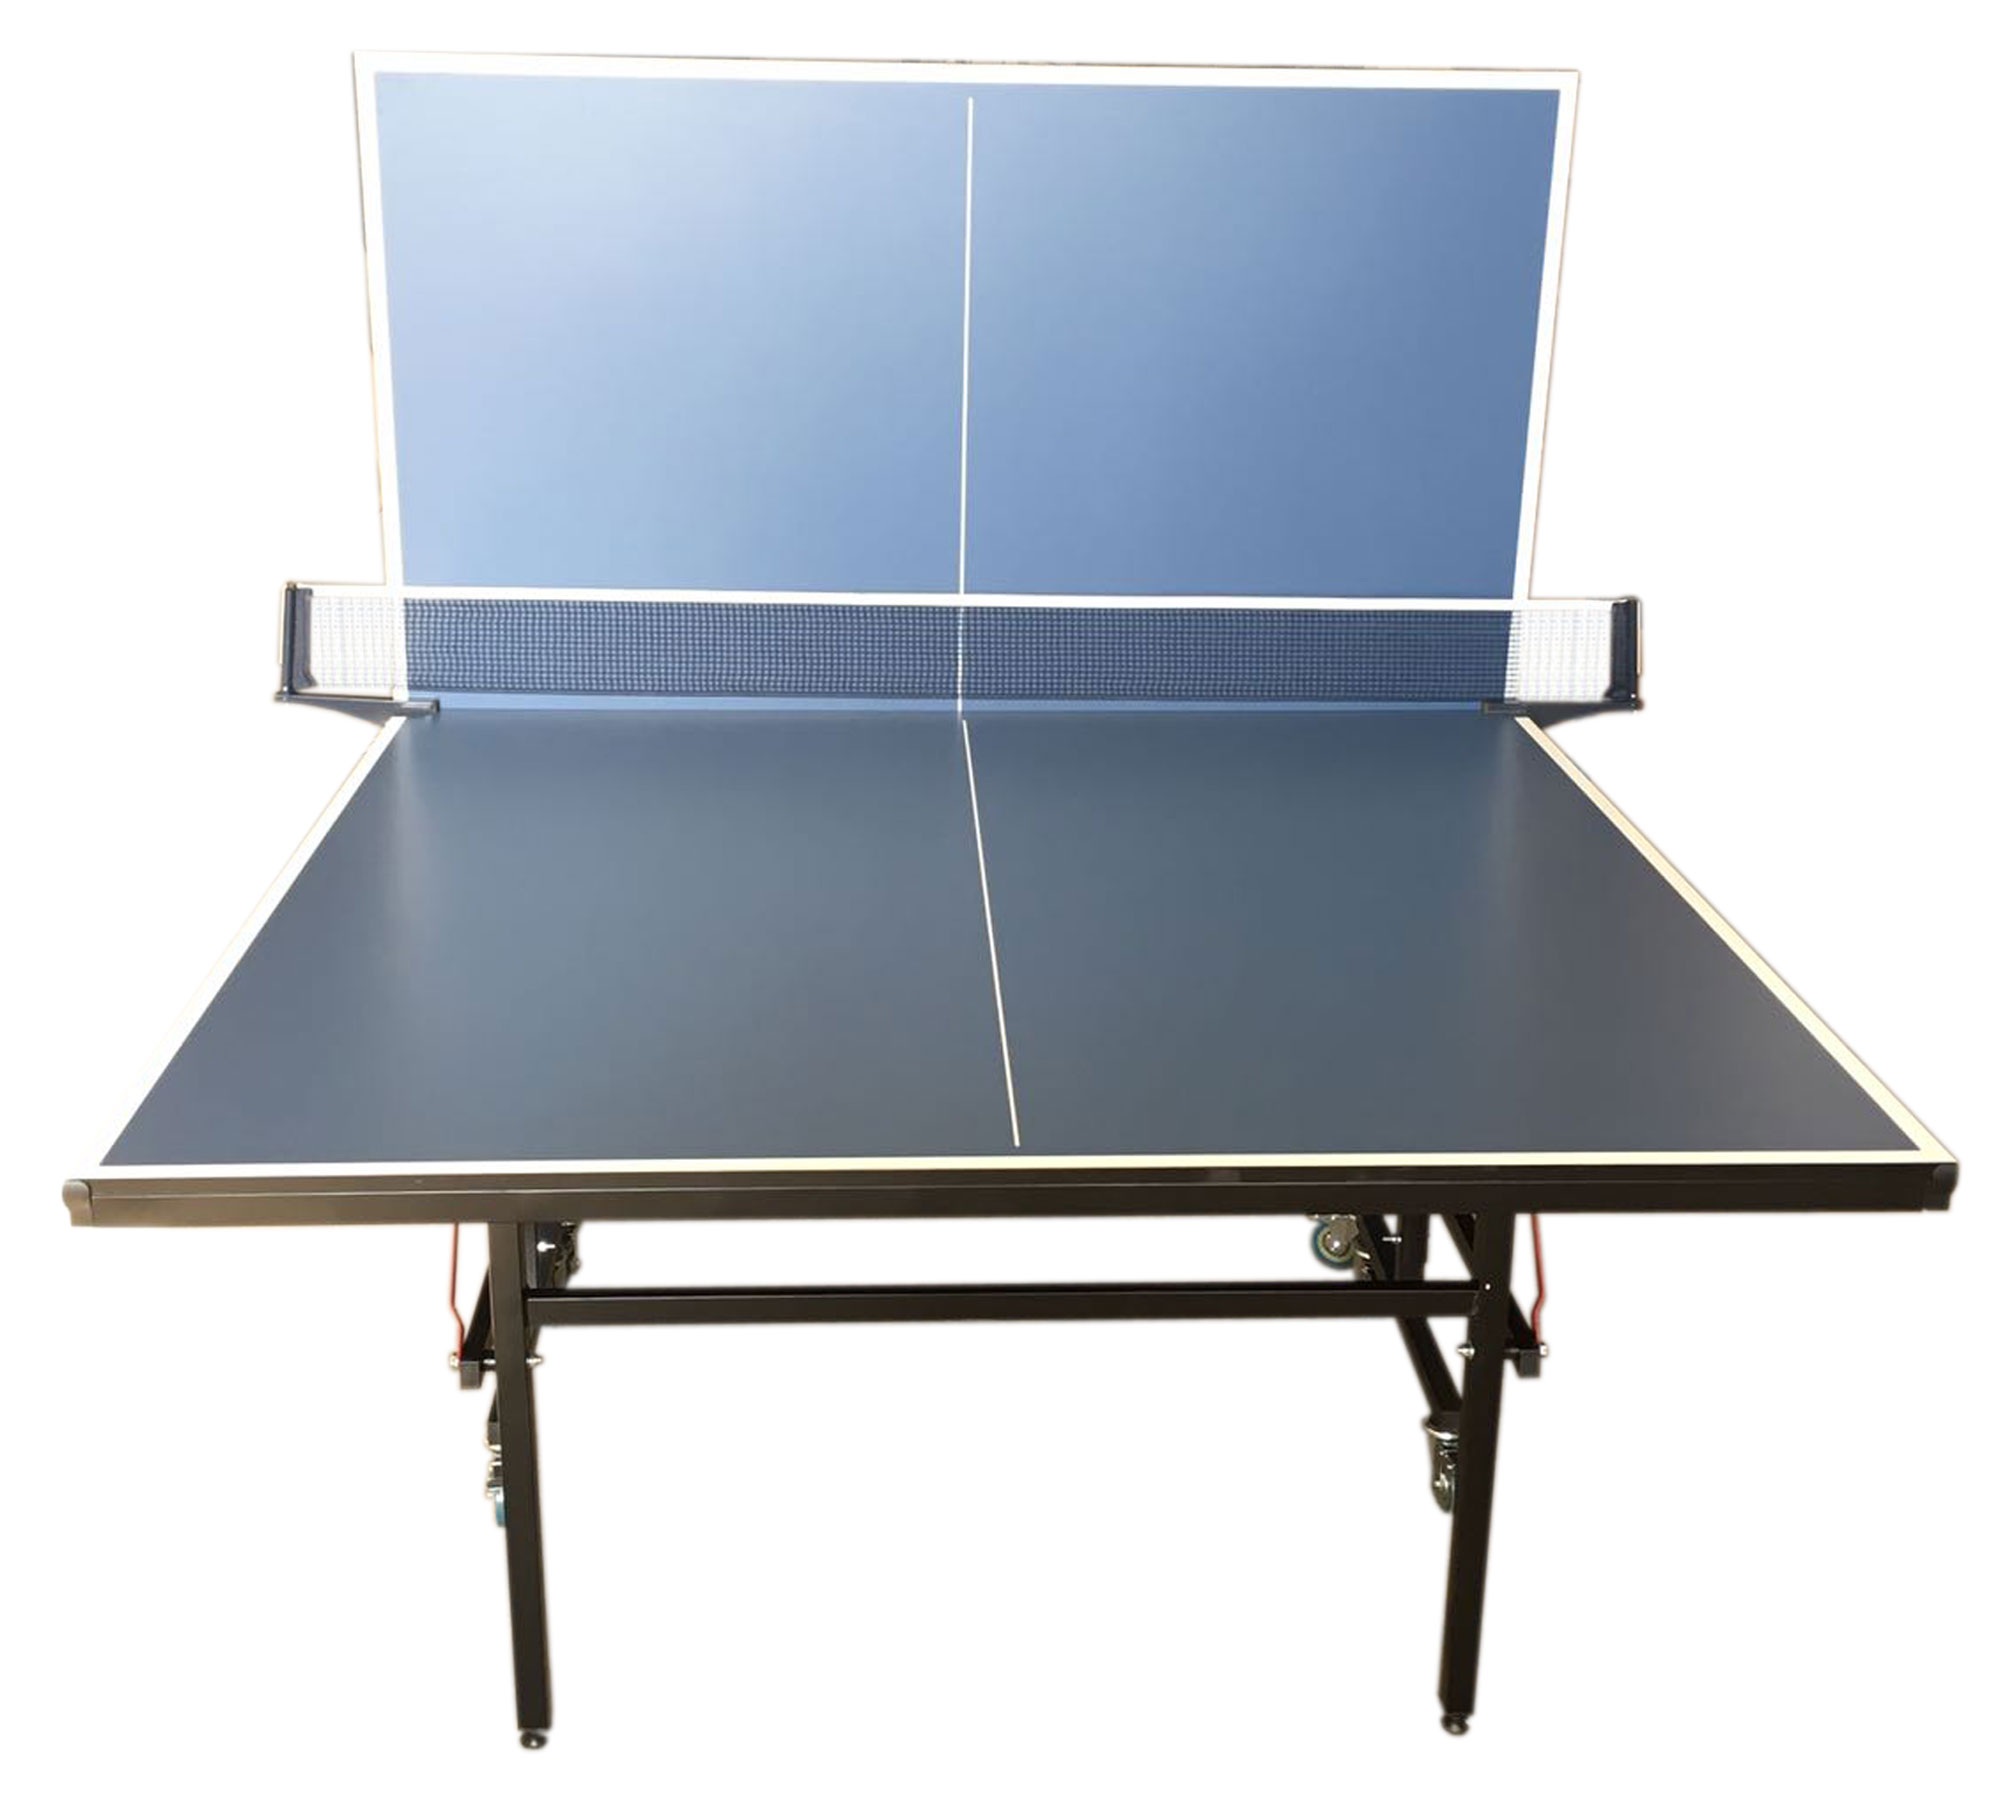 Tennis table professional indoor table blue - Costo tavolo da ping pong ...